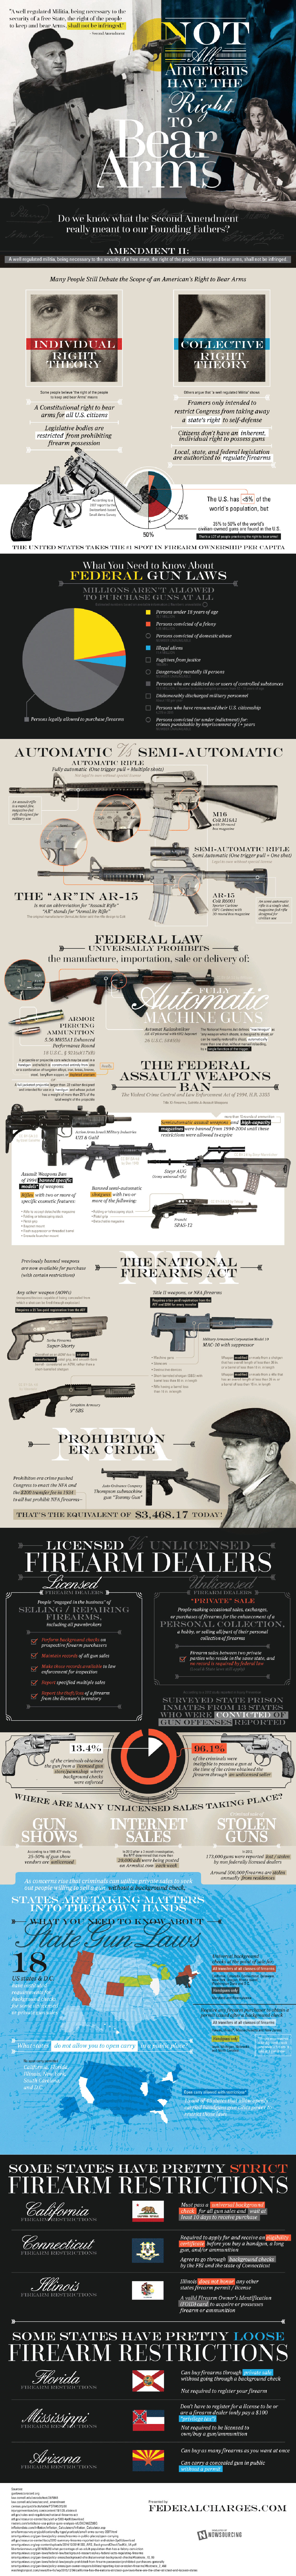 Second Amendment and the Right to Bear Arms - Law Infographic